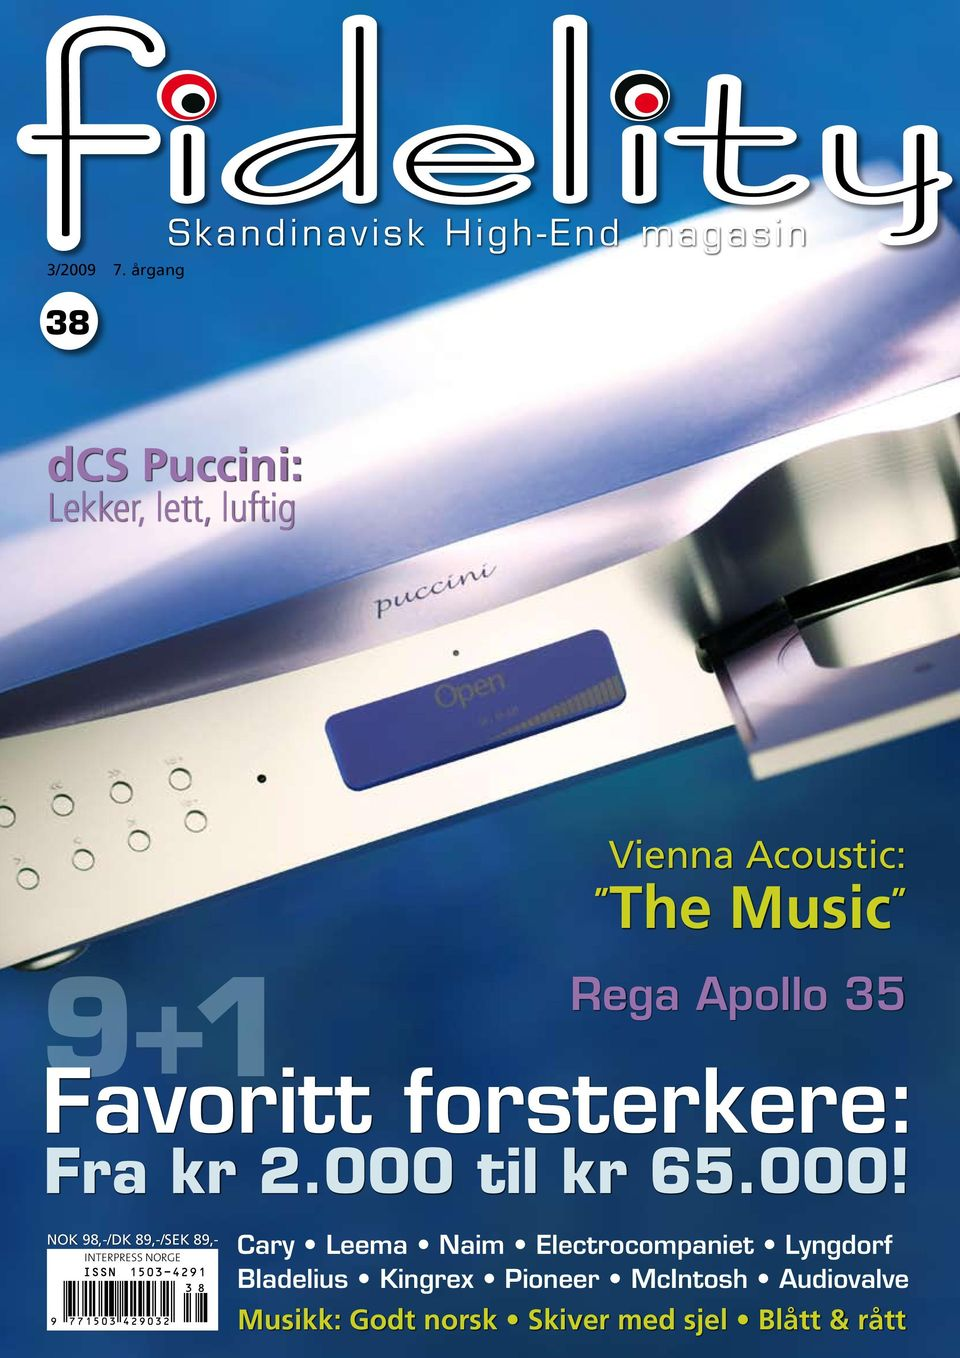 Acoustic: The Music Rega Apollo 35 Favoritt forsterkere: Fra kr 2.000